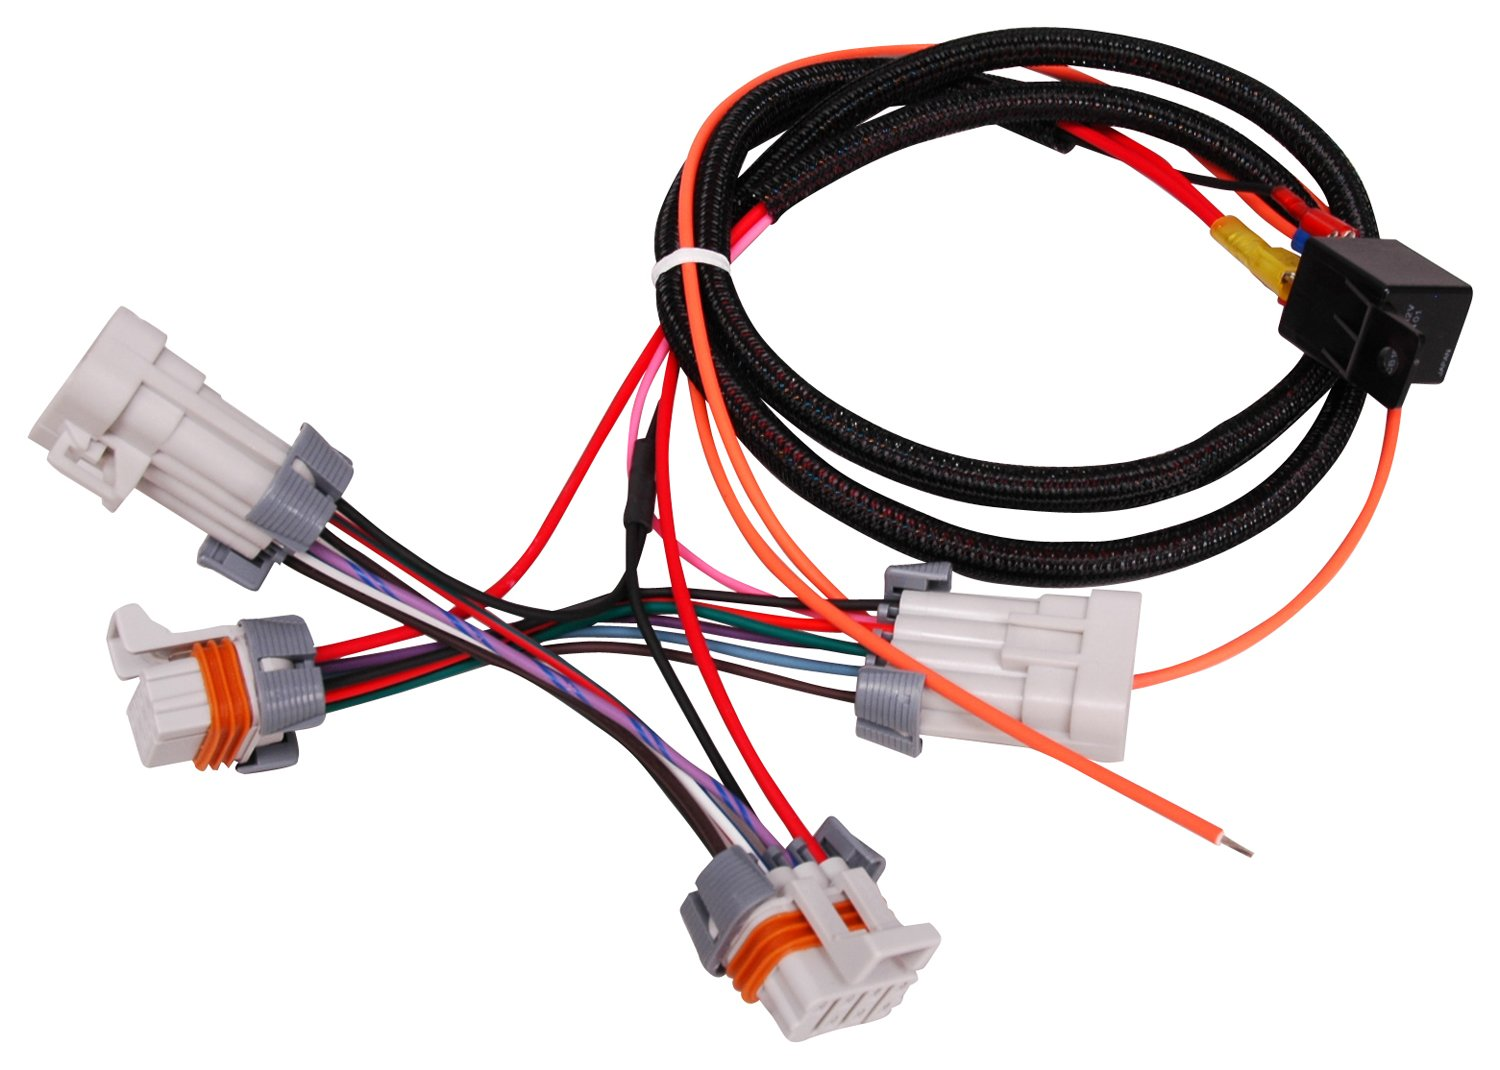 Msd 88867 Ls Coil Harness, Power Upgrade MSD Coil Ford Ranger Msd Coil Wire  Harness